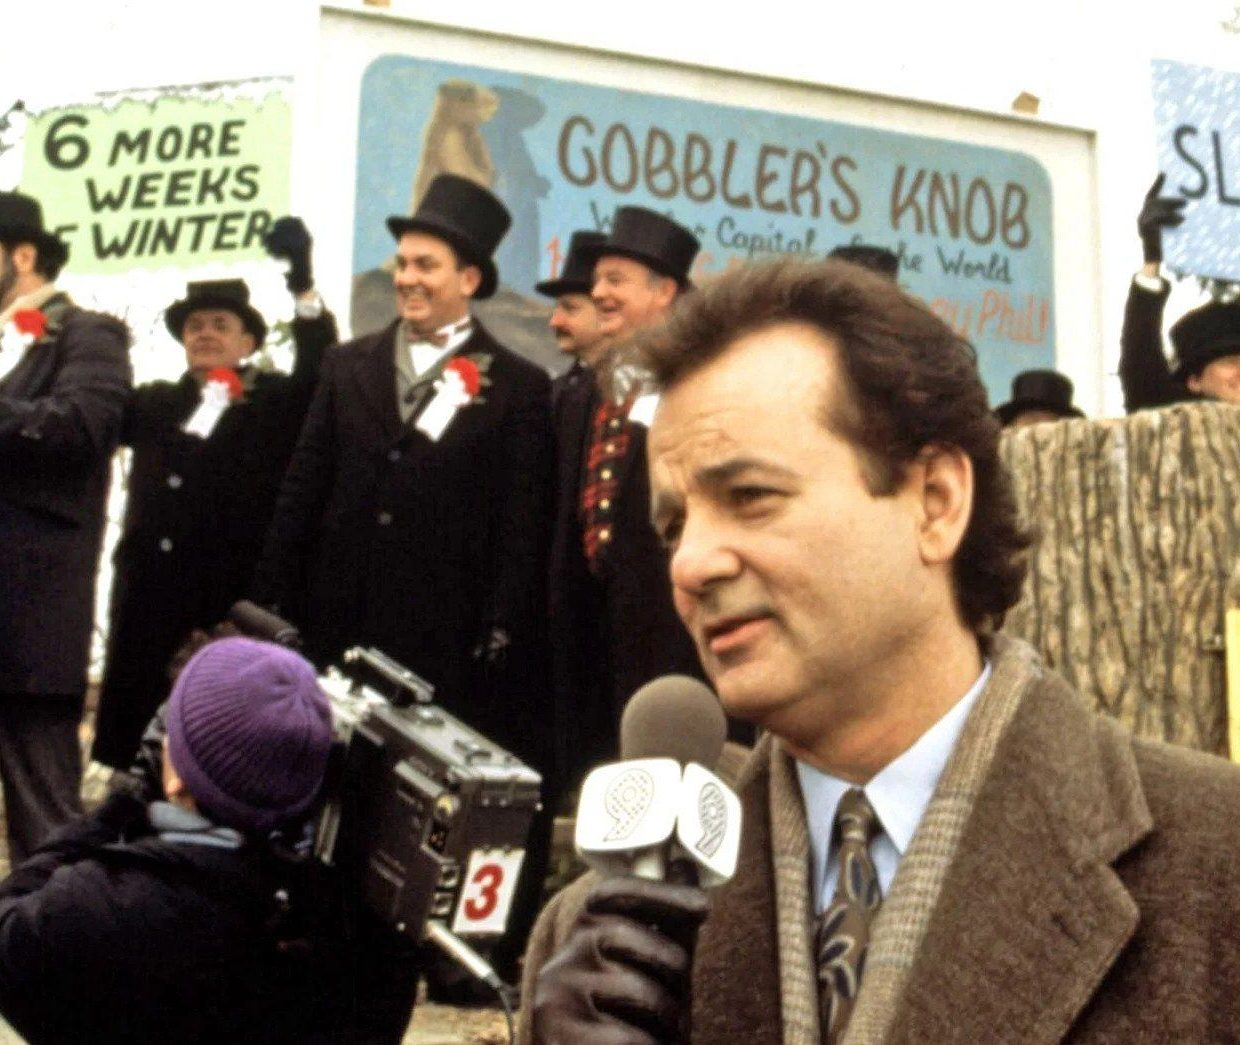 21 5 e1601291858457 20 Things You Might Not Have Realised About Groundhog Day